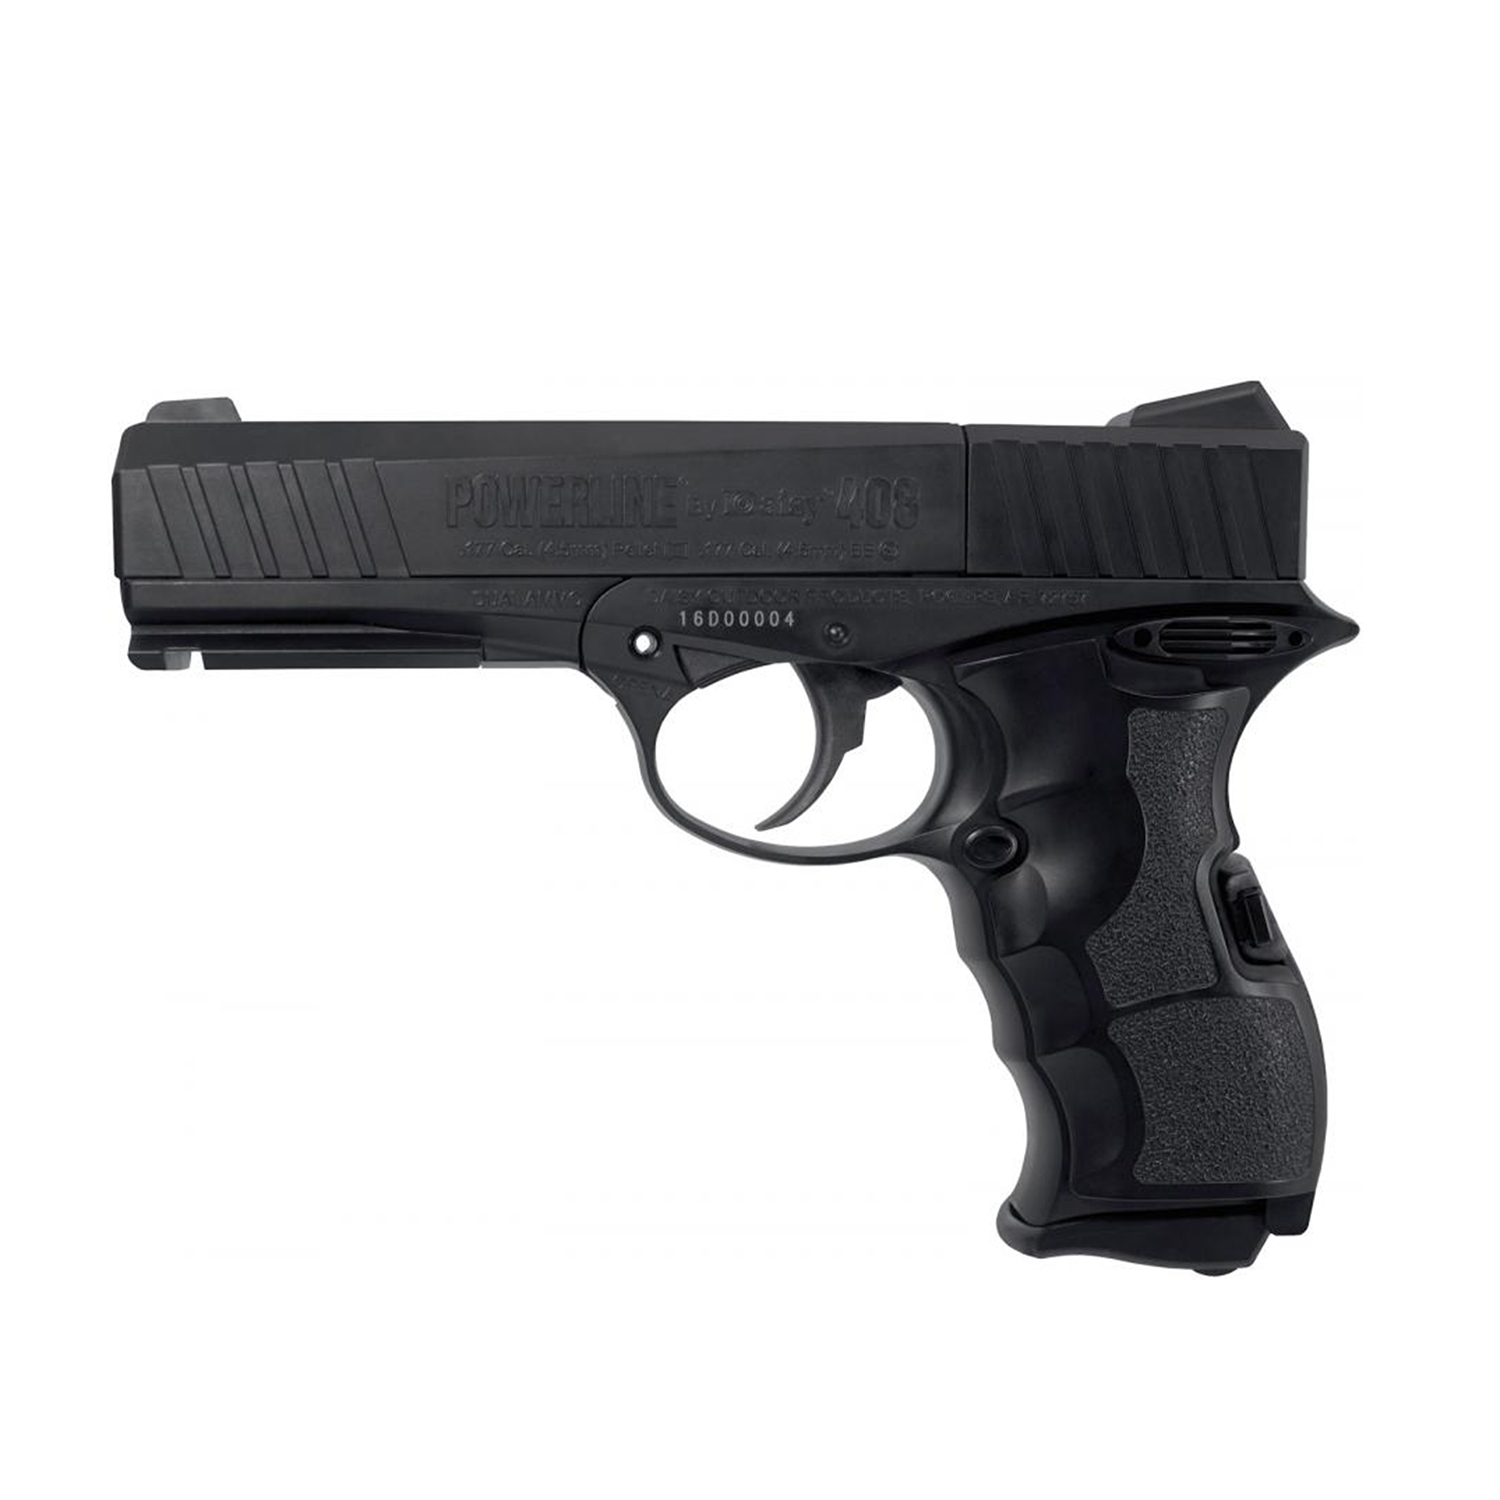 Daisy Outdoor Products PowerLine 408 Pistol 8-Shot BB or Pellet C02 Semi-Automatic by Daisy Outdoor Products